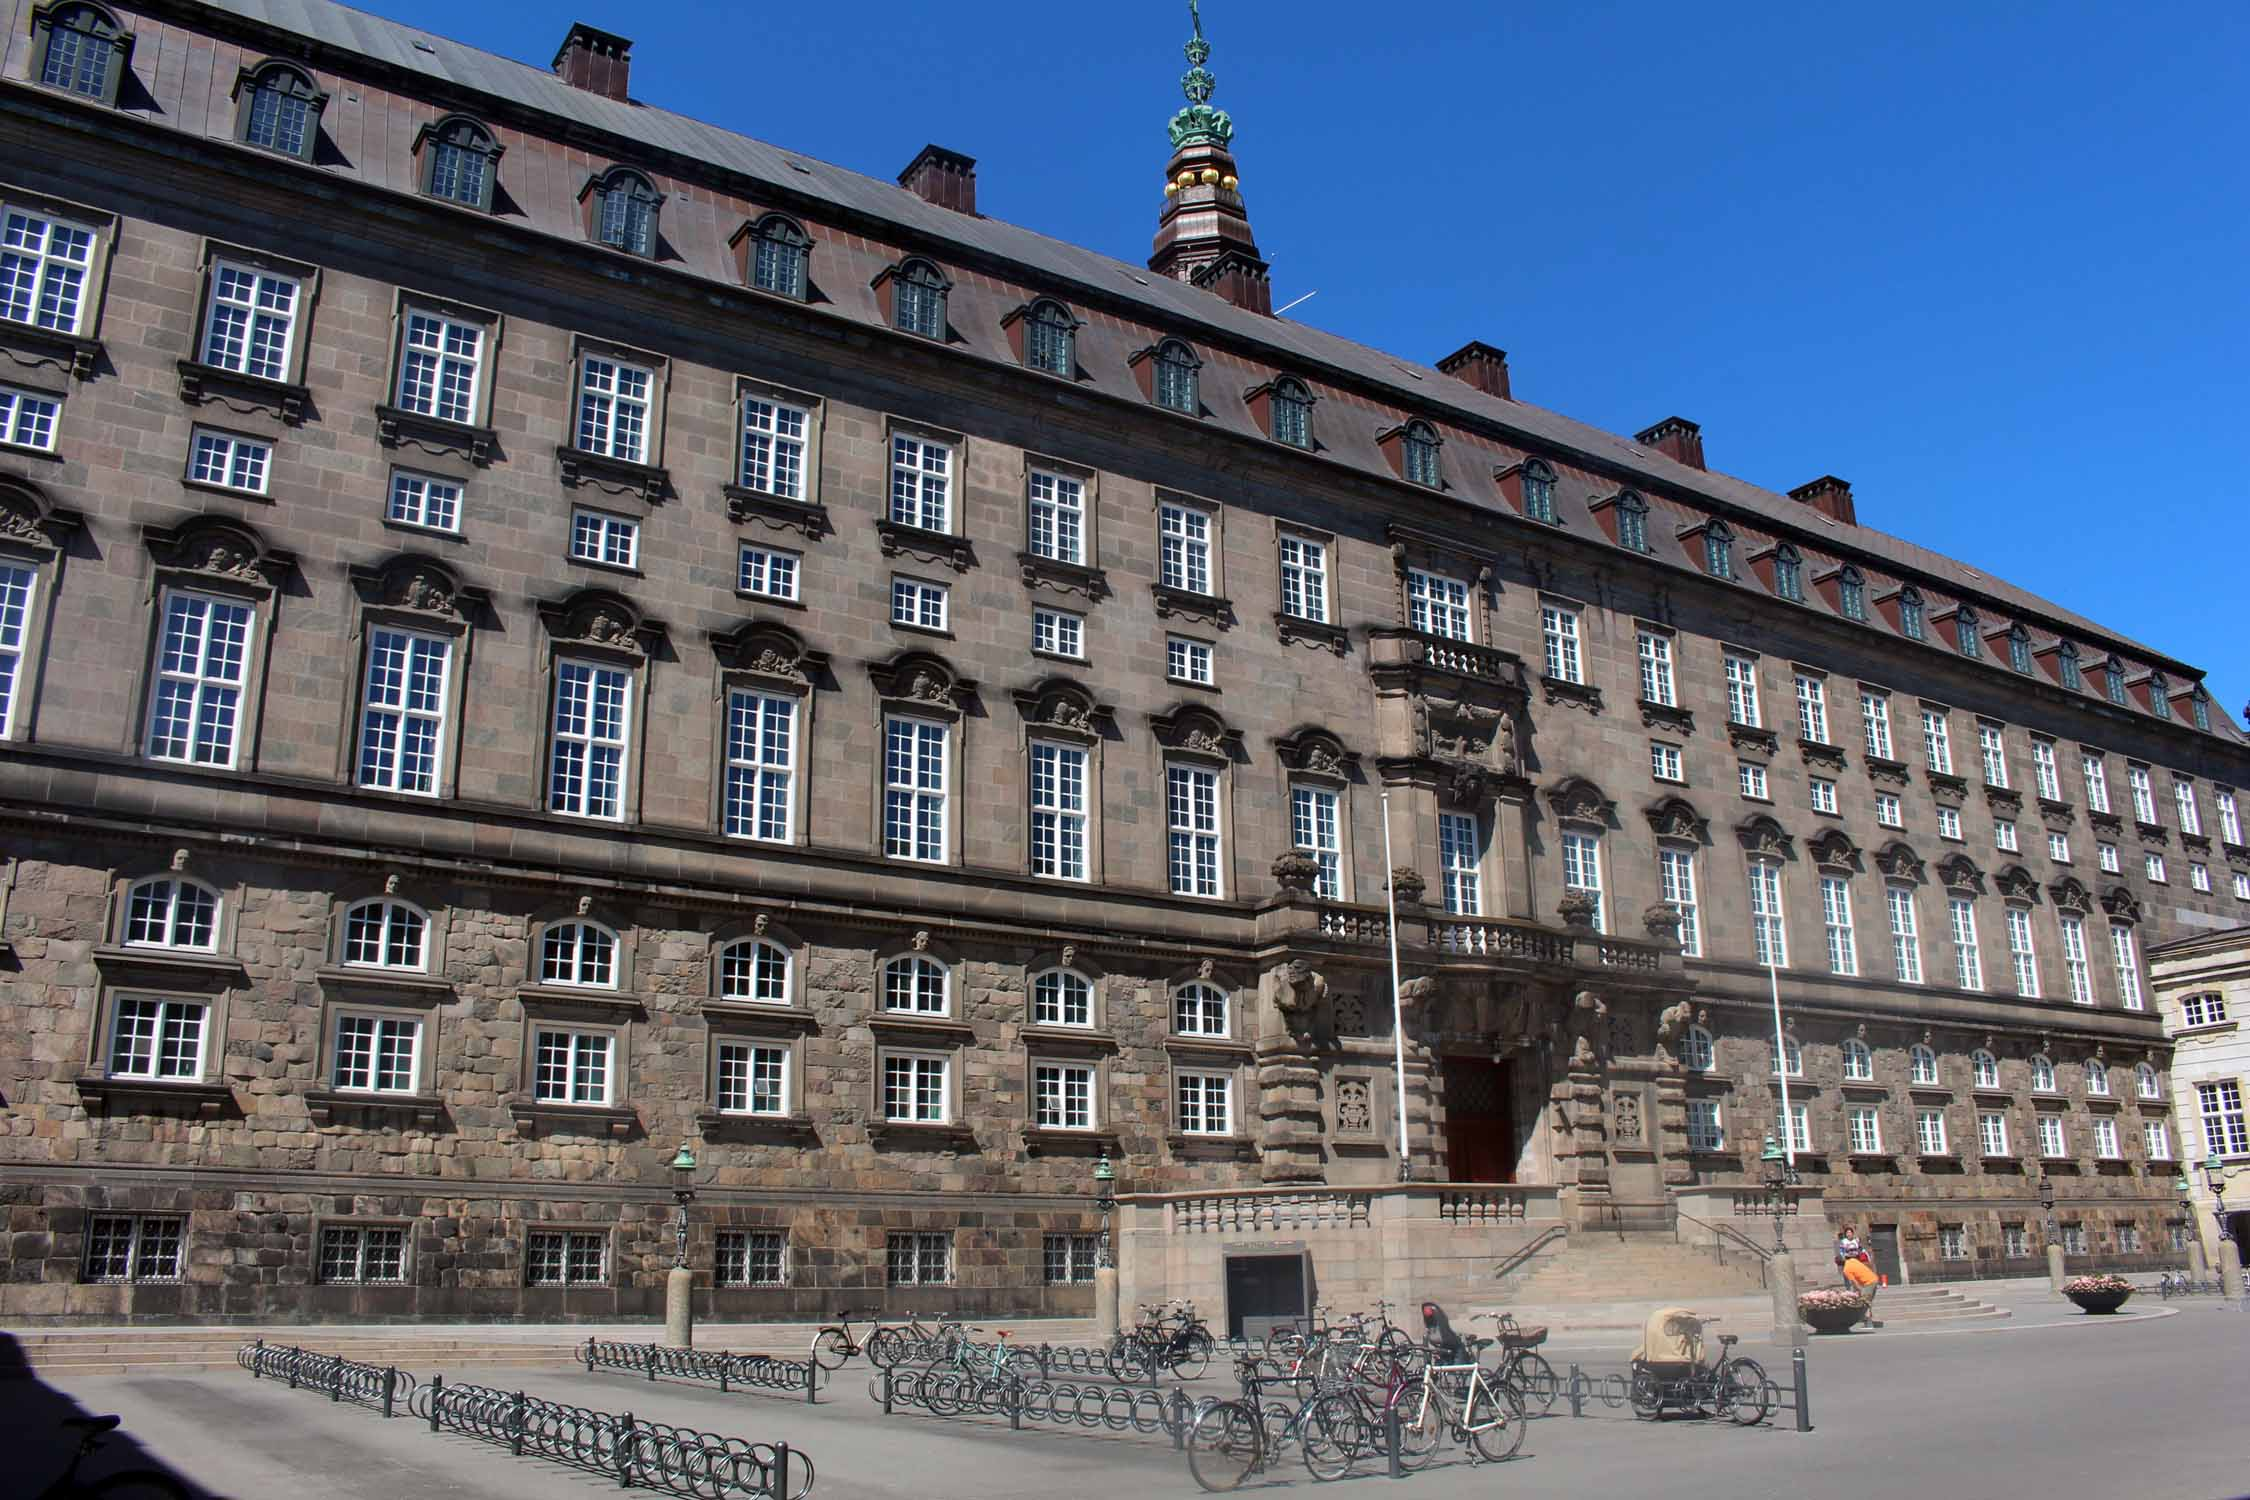 Copenhague, parlement danois